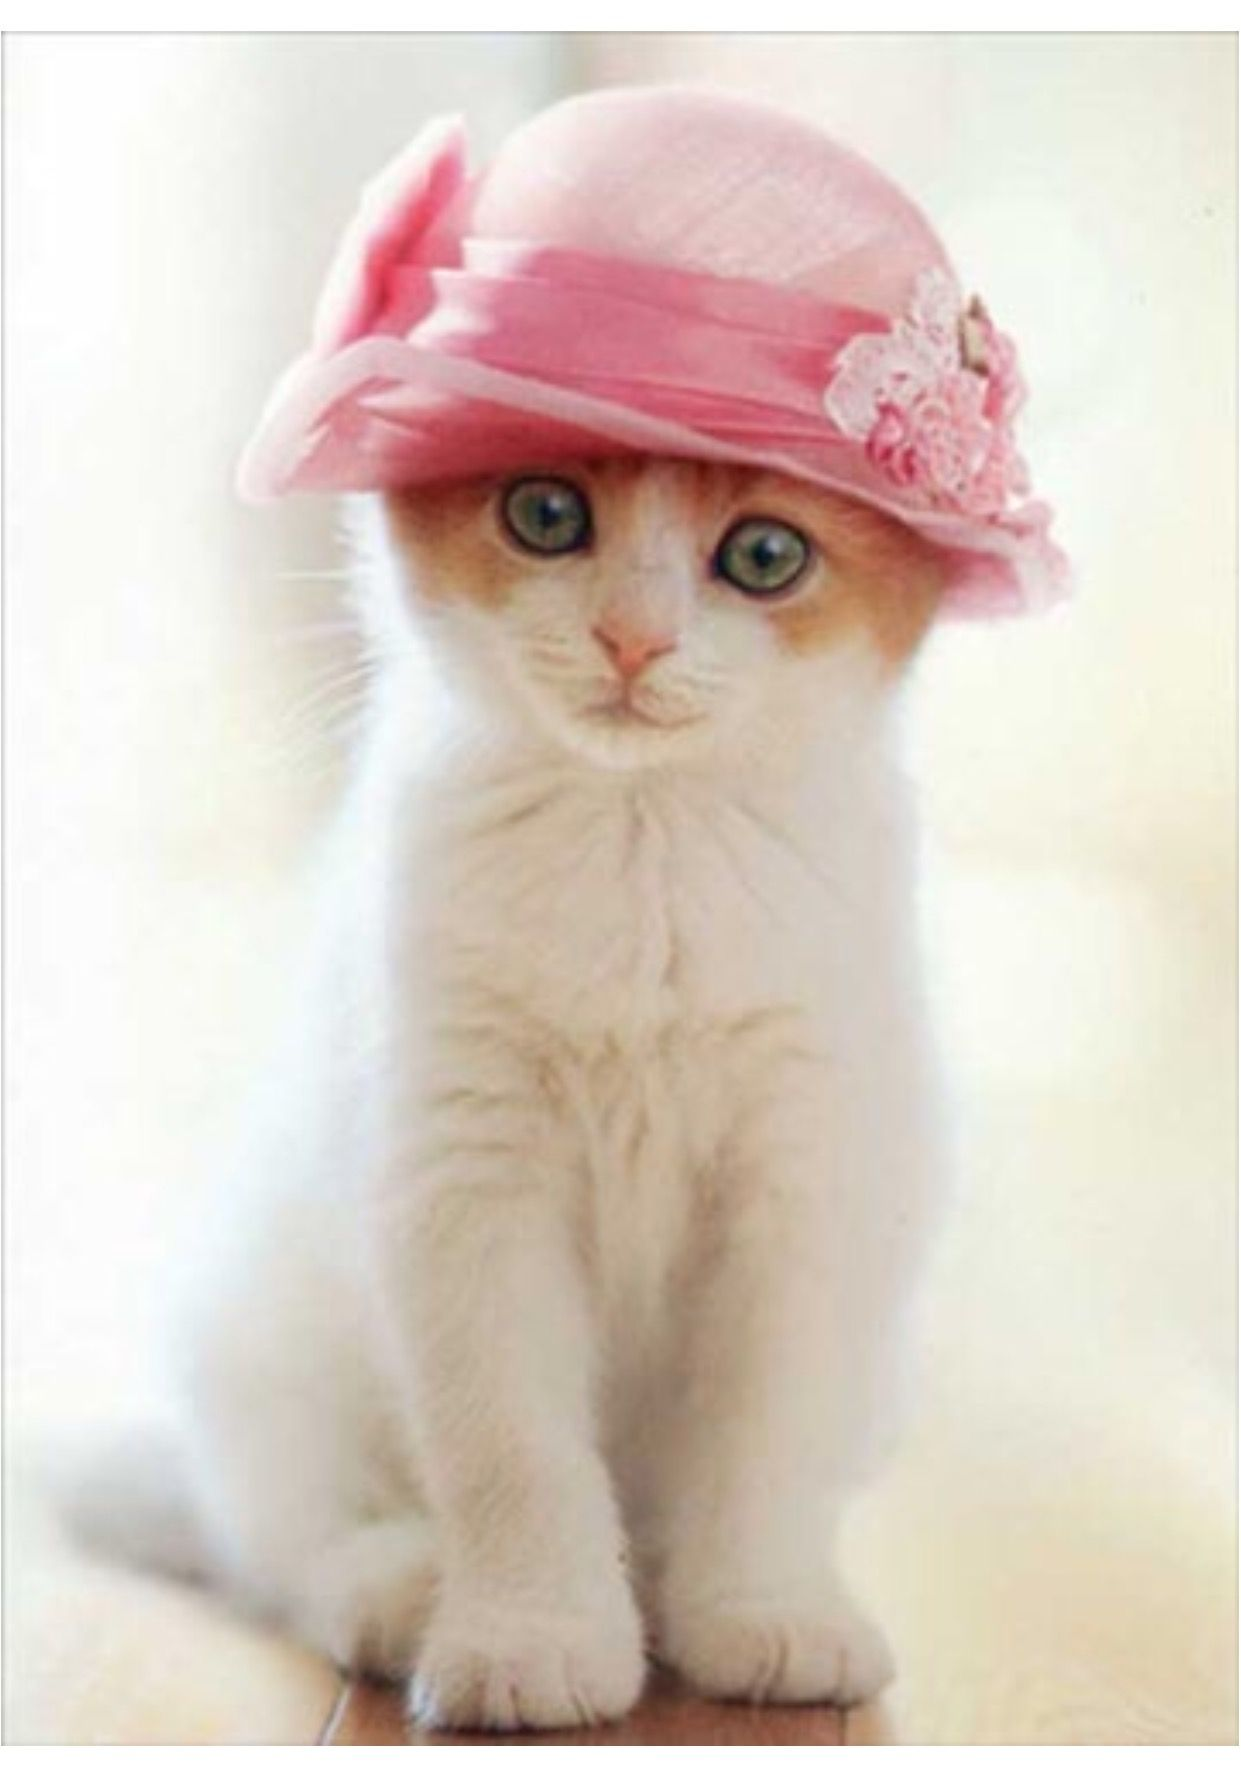 Pin By Jeanette Bellaci On In The Pink Kittens Cutest Cute Cats Pretty Cats